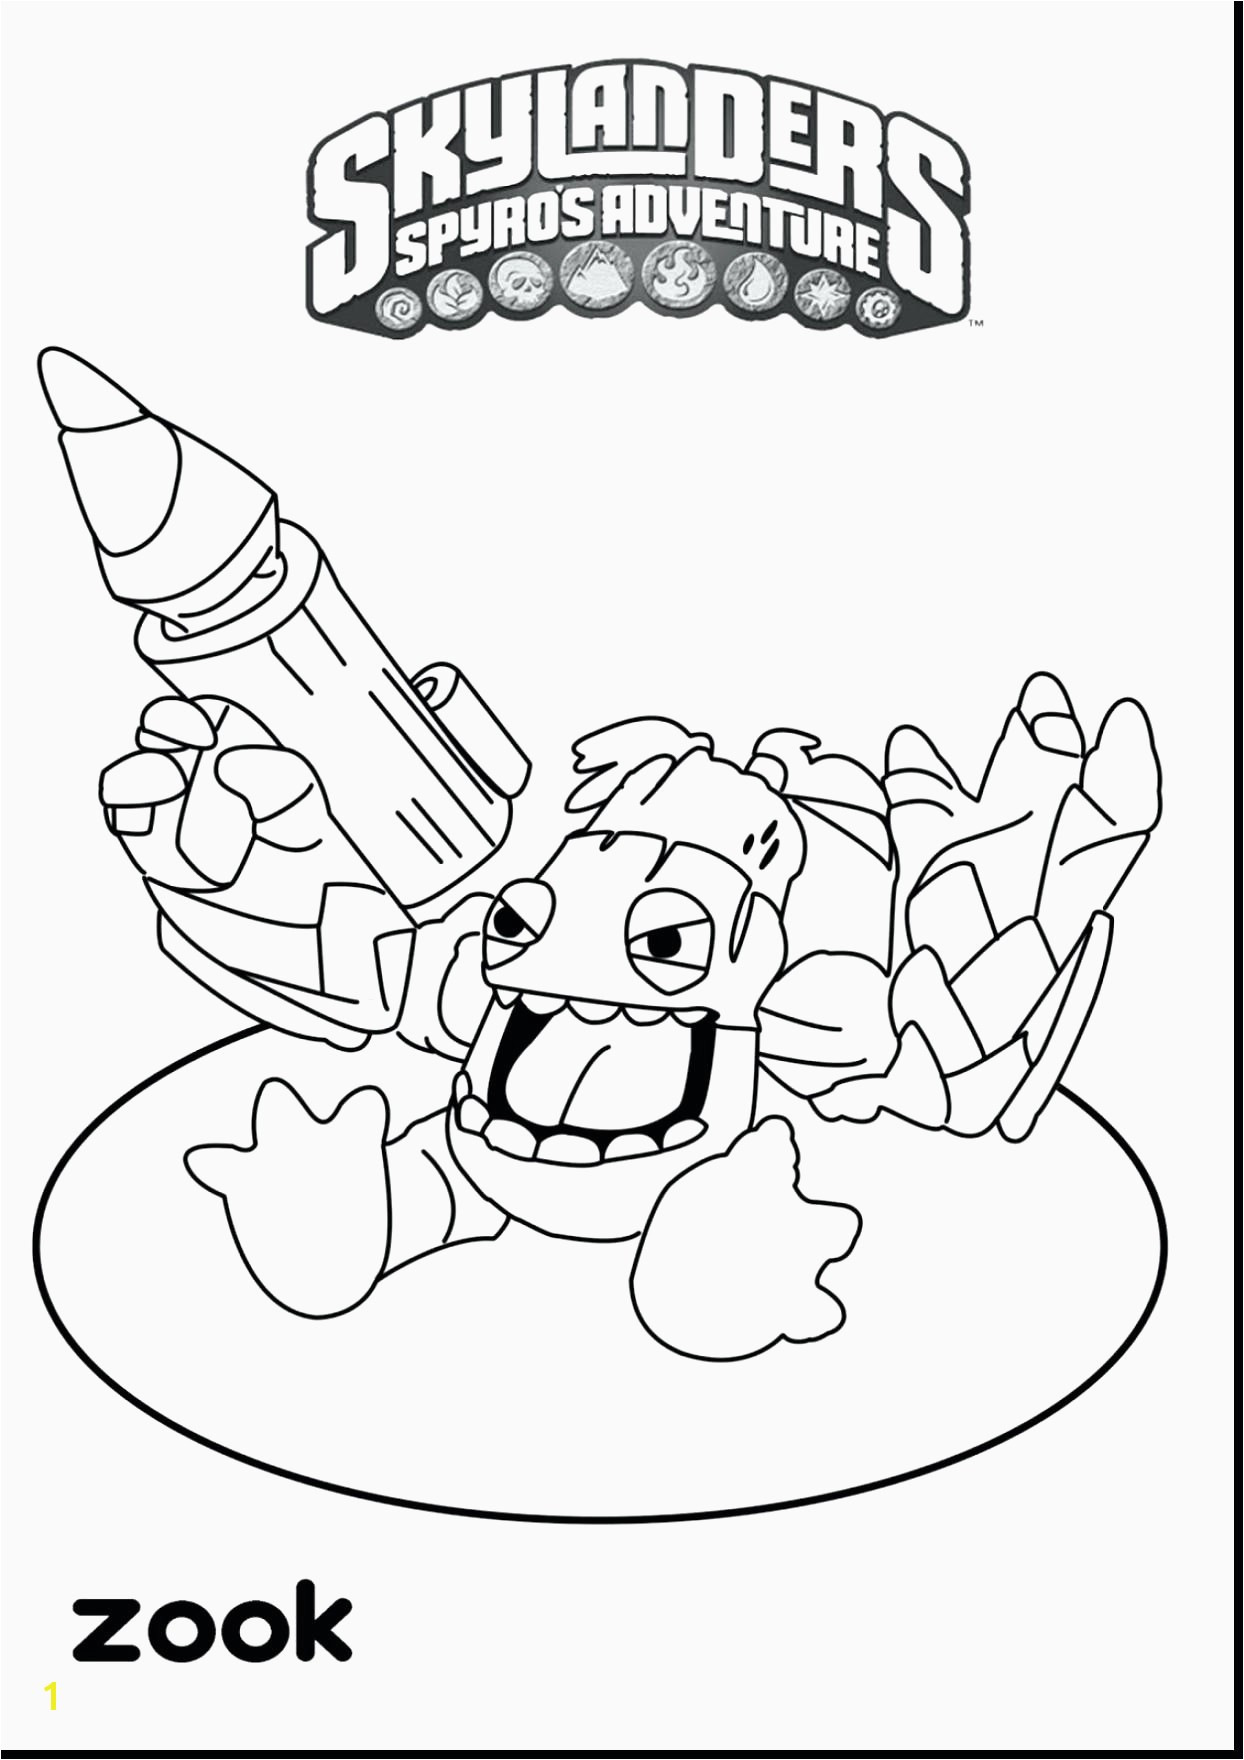 Stitch Christmas Coloring Pages Elephant Coloring Page Coloring Elephants Coloring Pages